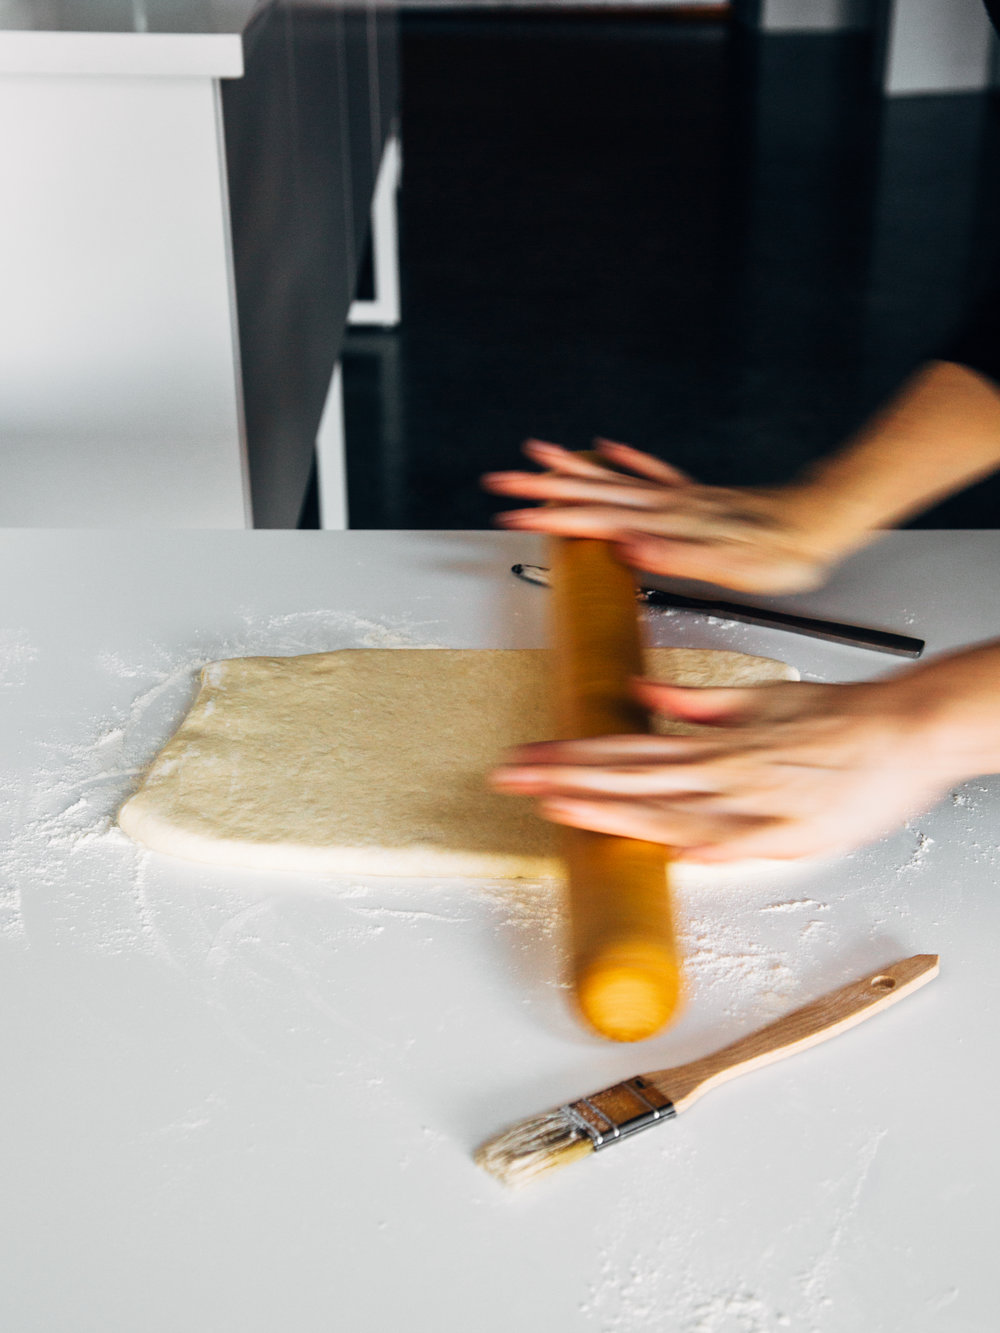 laminated-dough